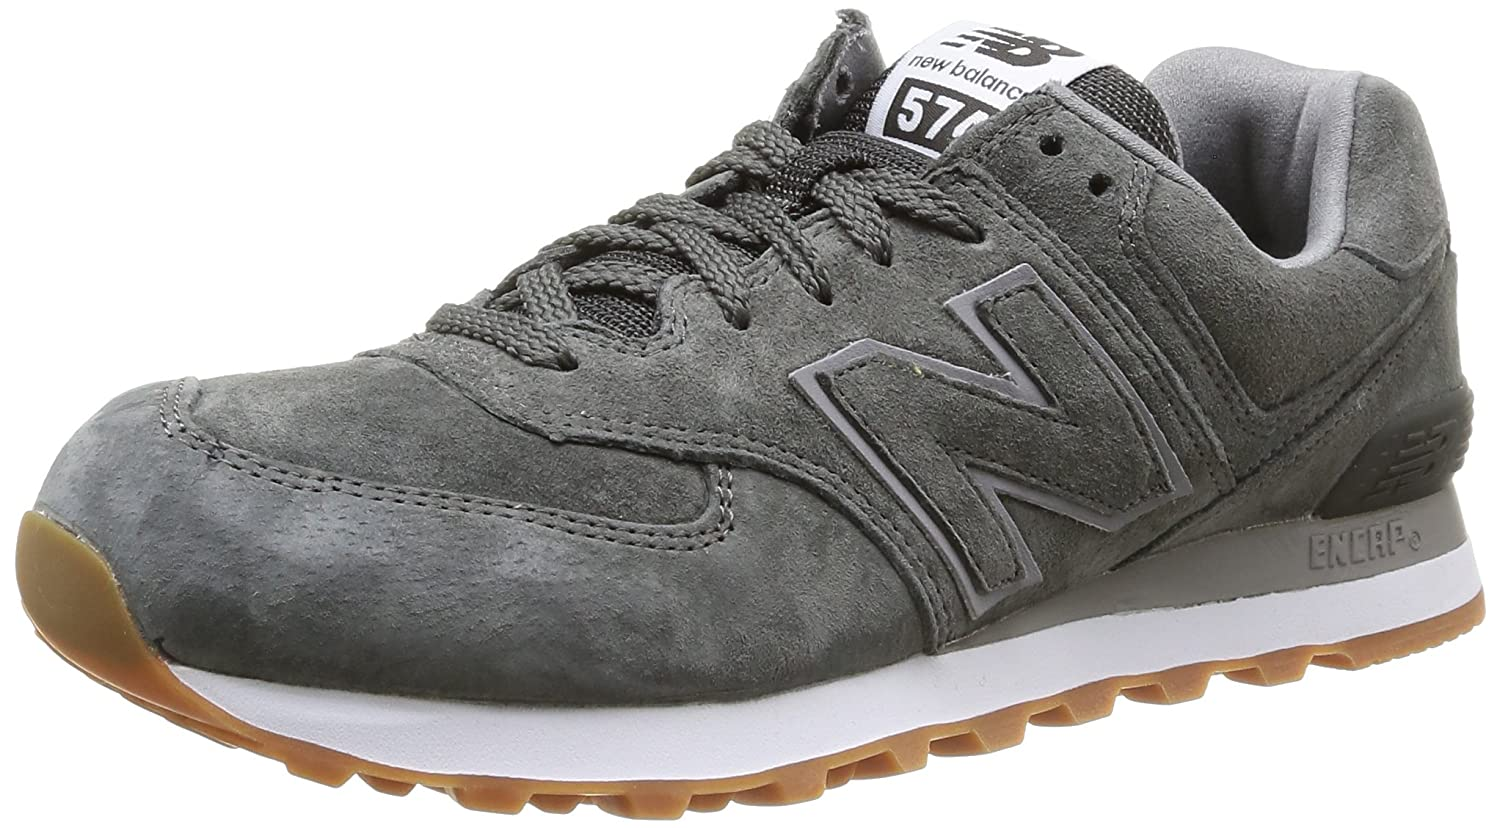 official photos 0eb2e ff536 New Balance Men's Nbml574fsc Trainers